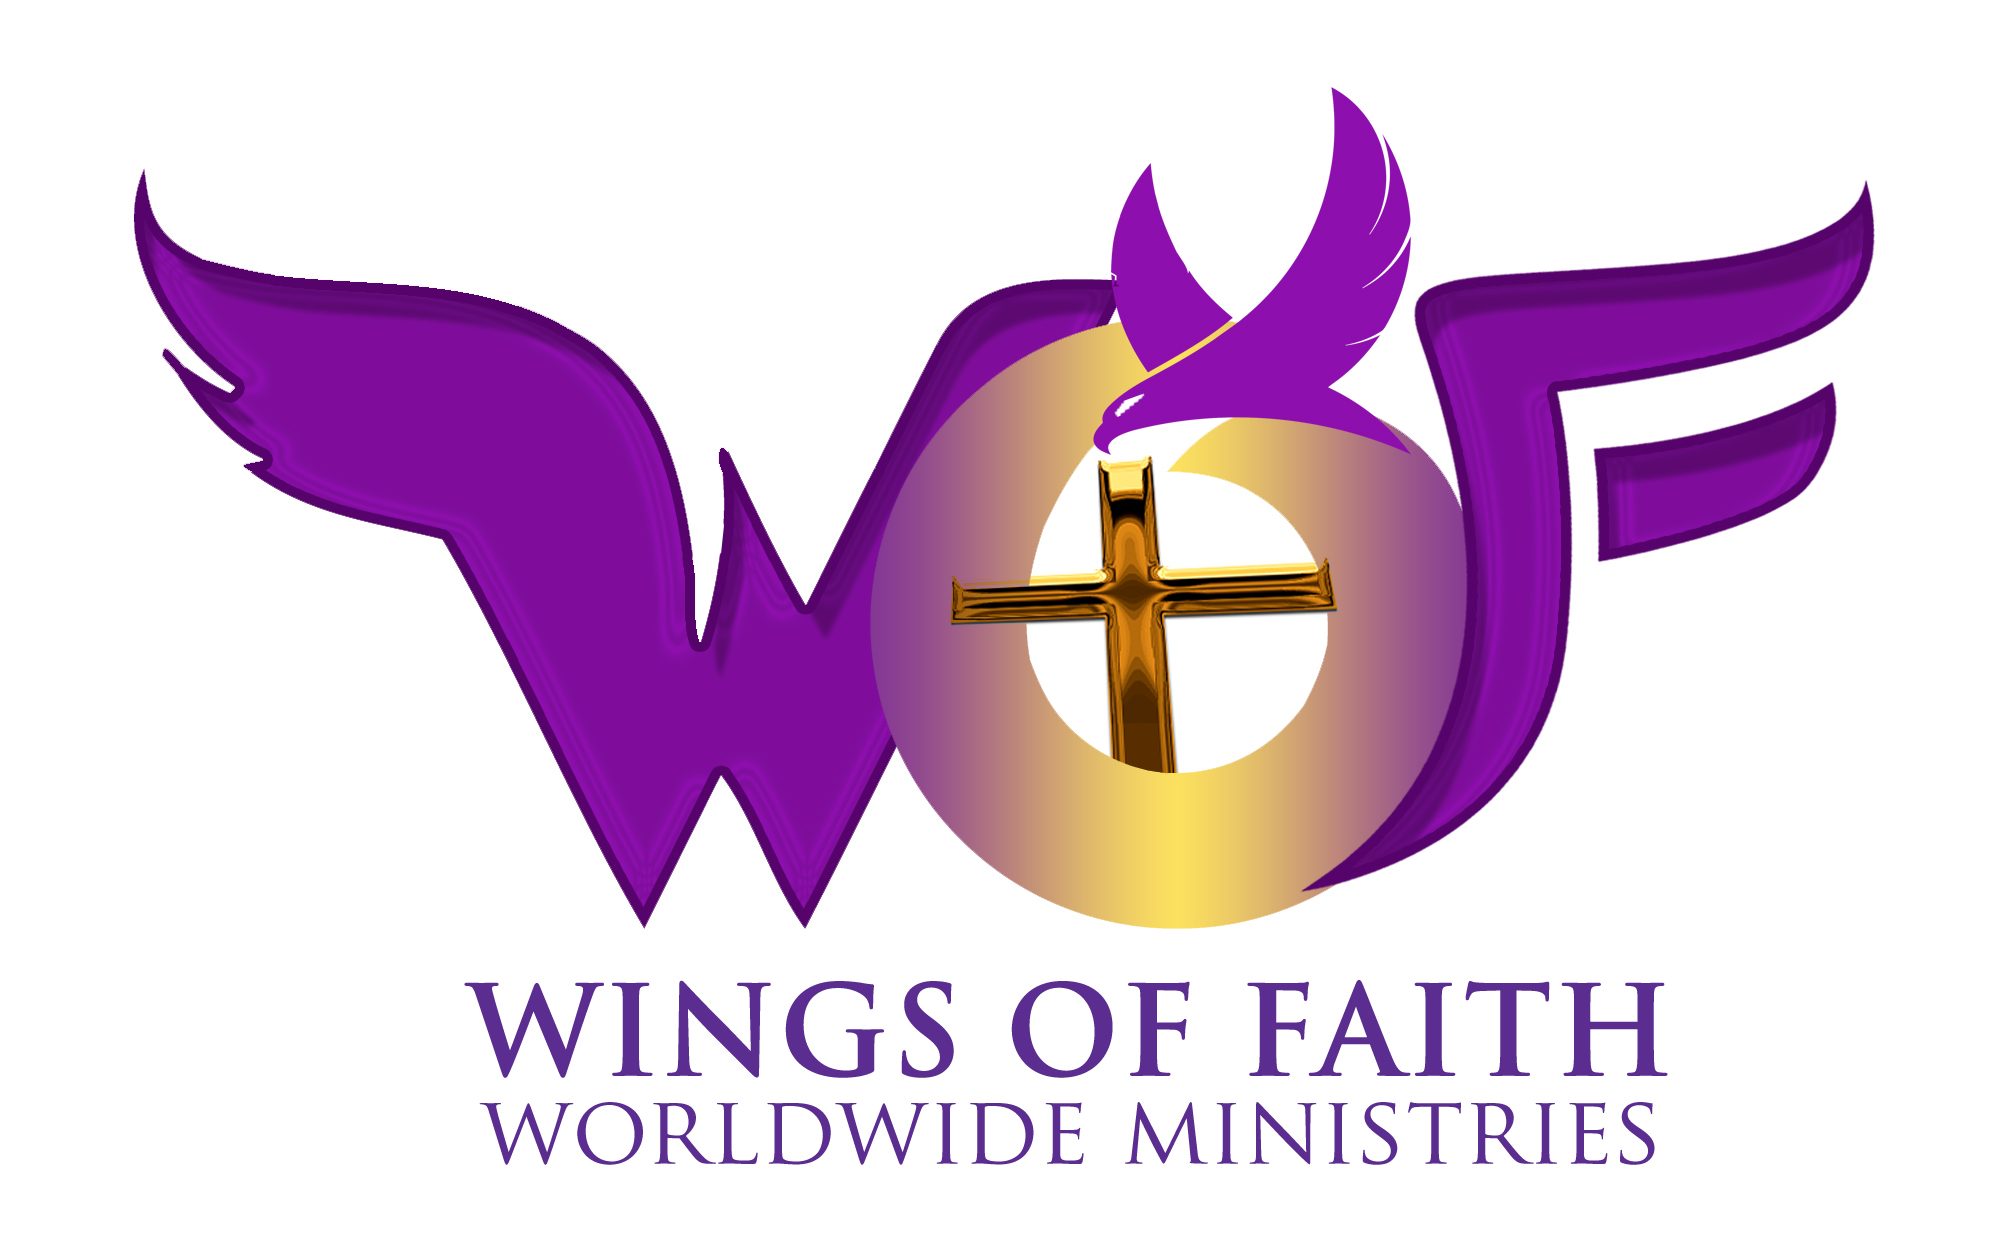 Wings Of Faith Worldwide Ministries